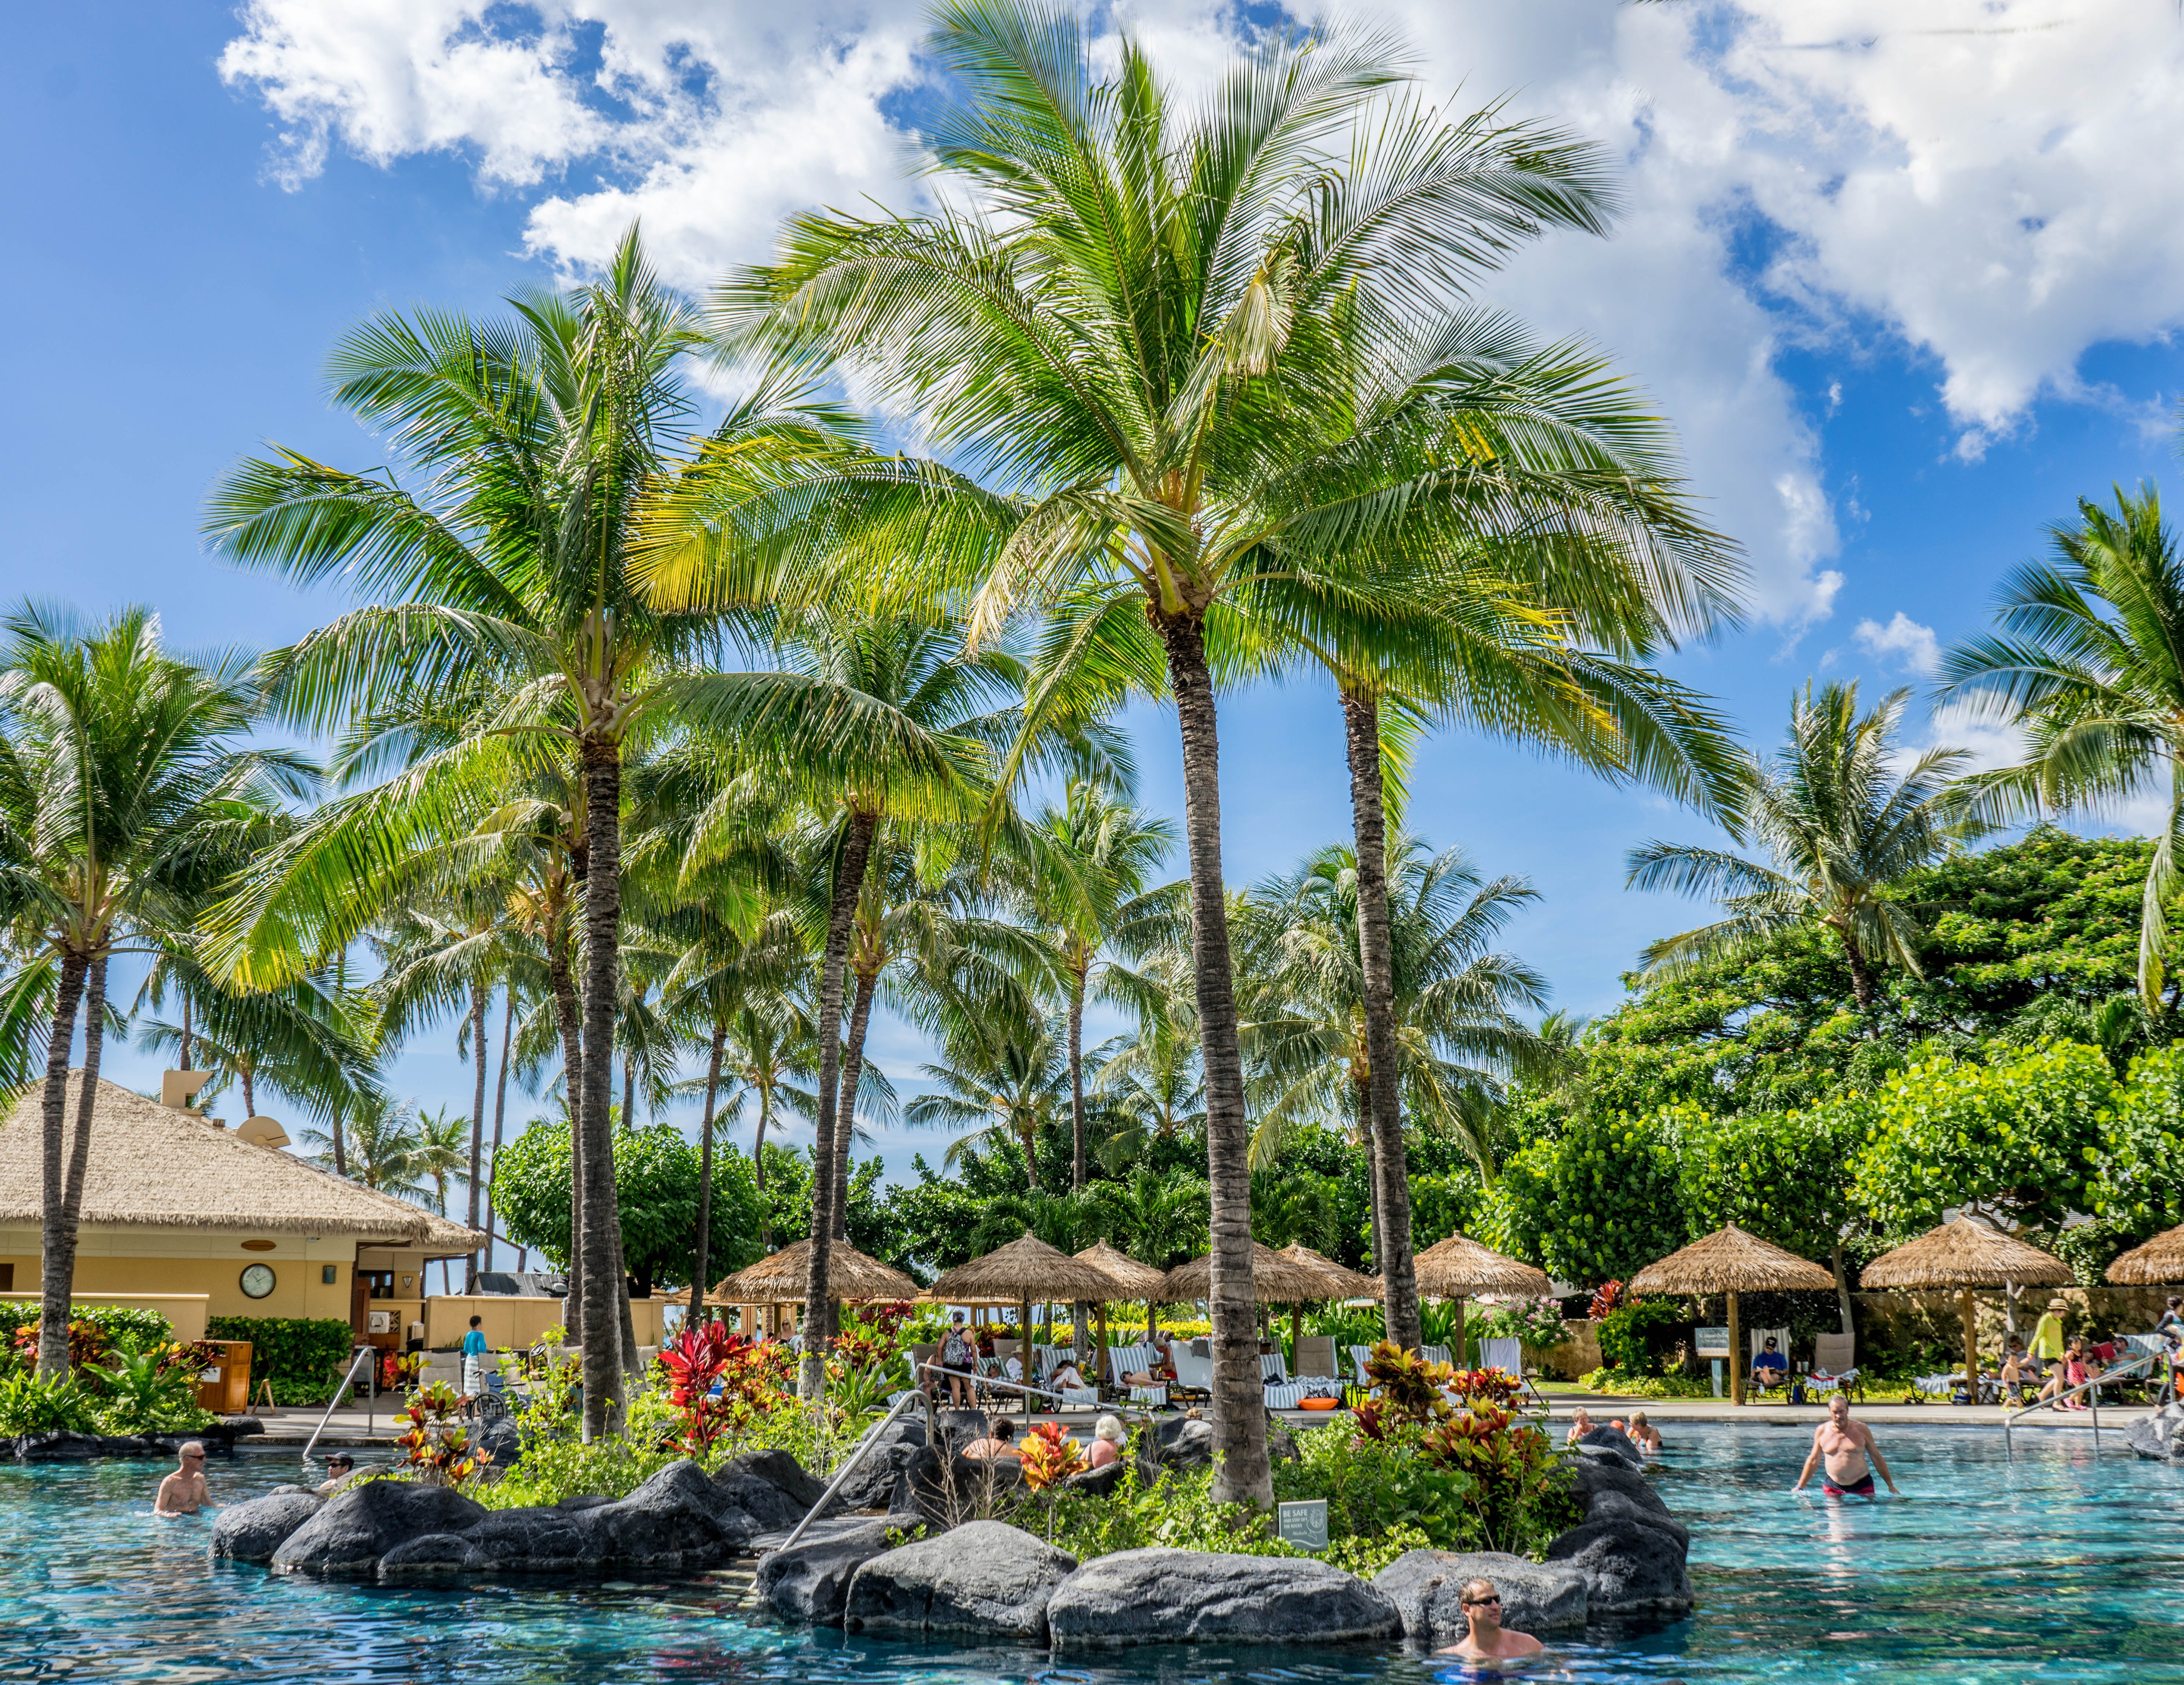 Palm Trees Surrounded by Body of Water